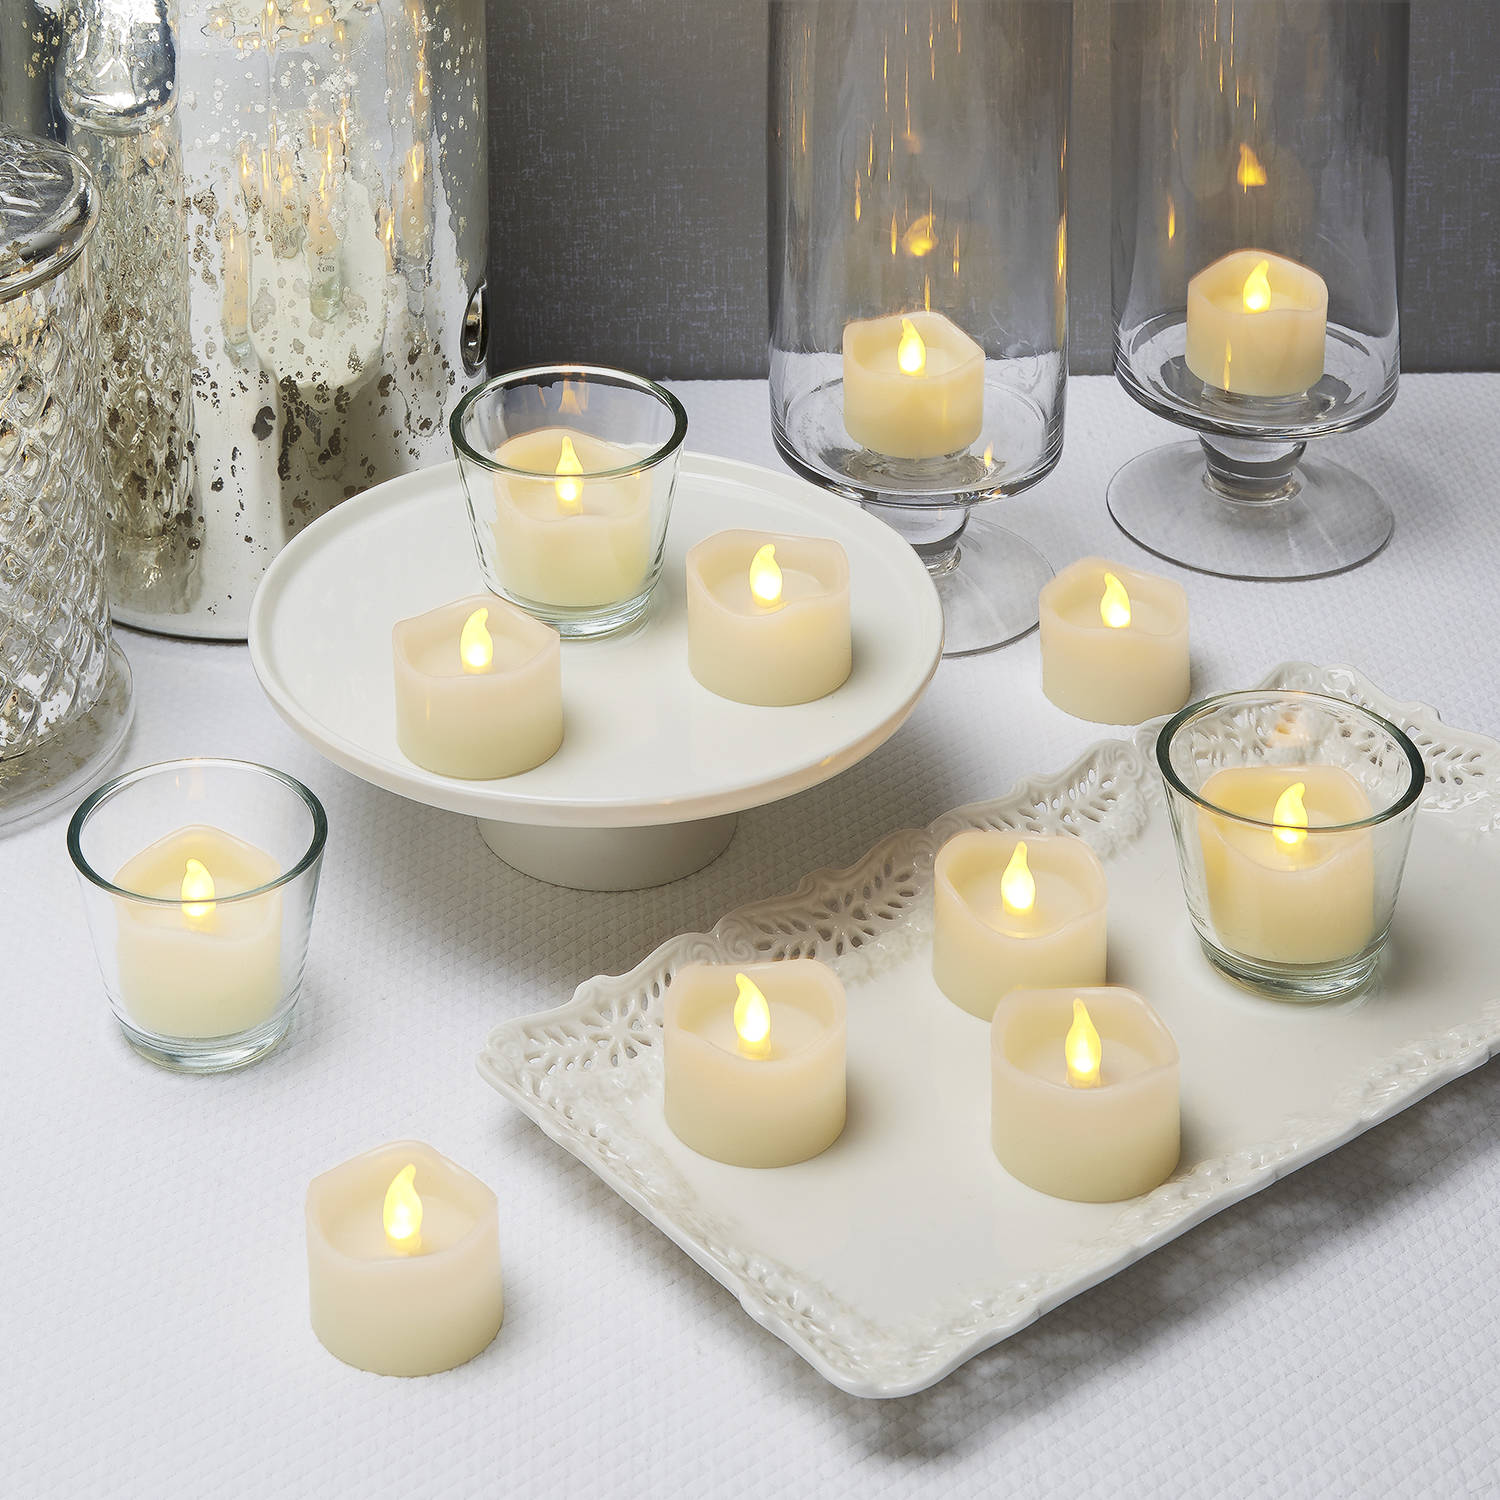 Lit Decor Flameless Candles Tea Lights Led Ivory Wax Tealights Set Of 12